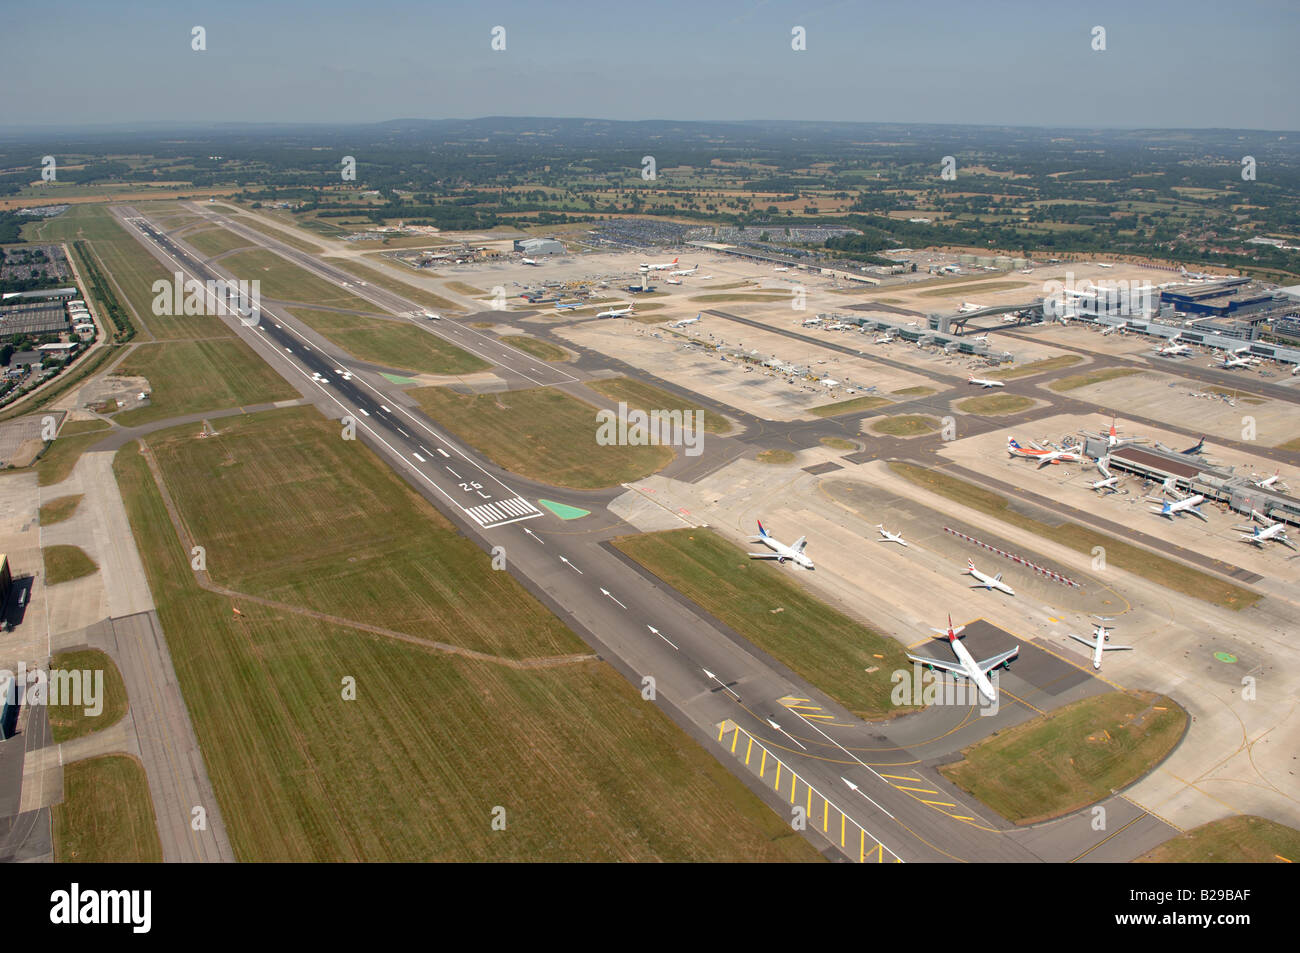 Gatwick Airport Date 12 03 2008 Ref ZB648 111149 0032 COMPULSORY CREDIT World Pictures Photoshot - Stock Image